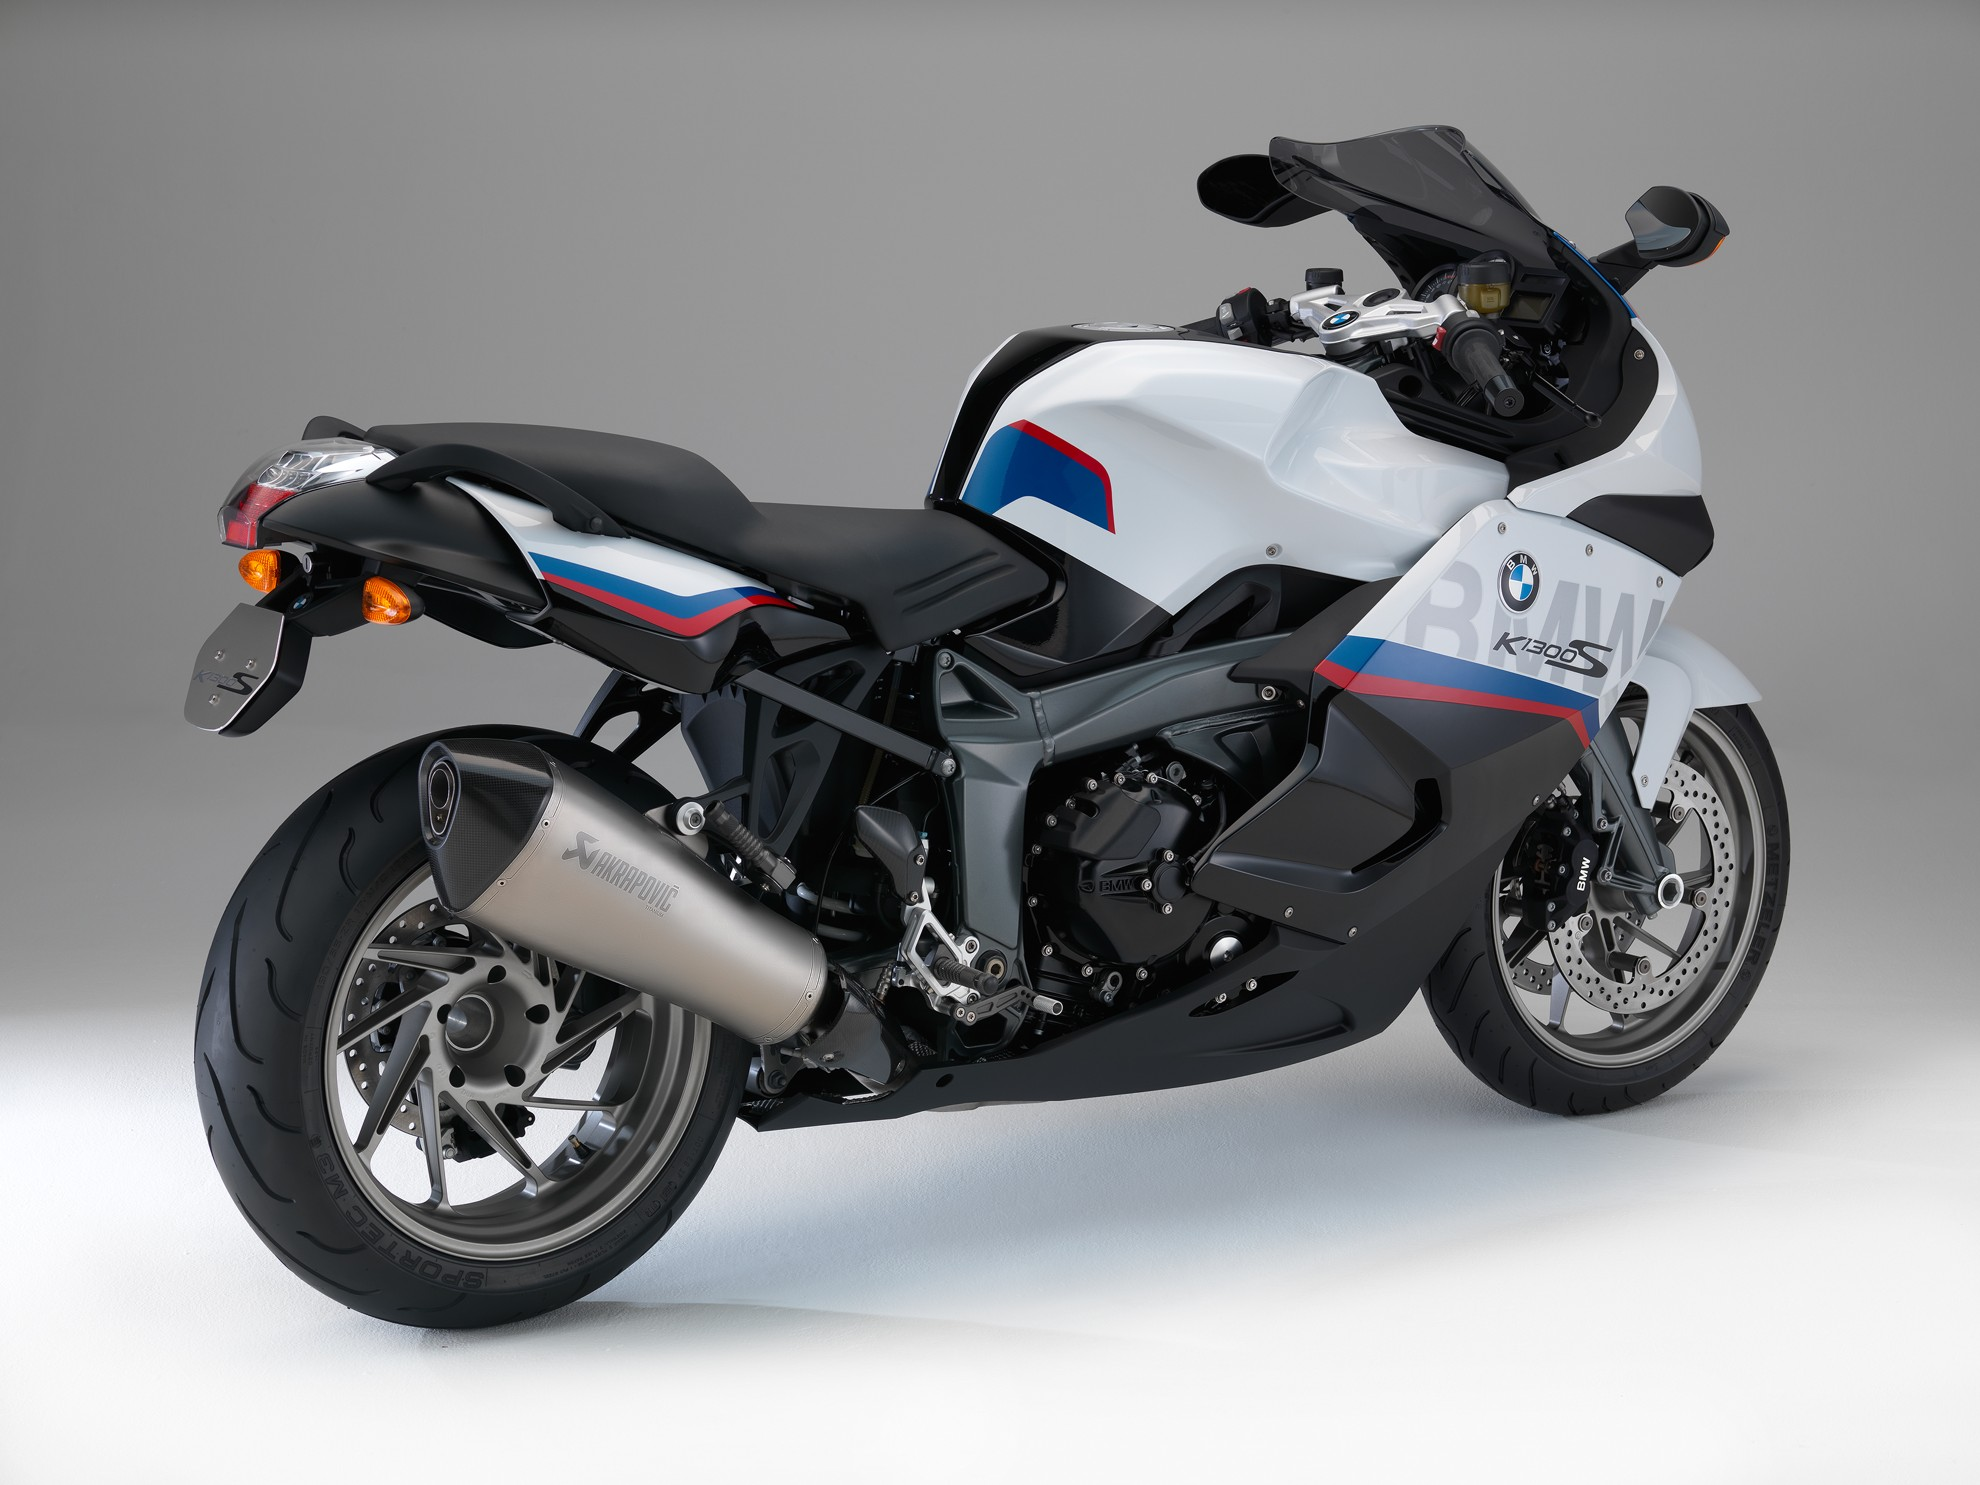 BMW K 1300 S Motorcycle